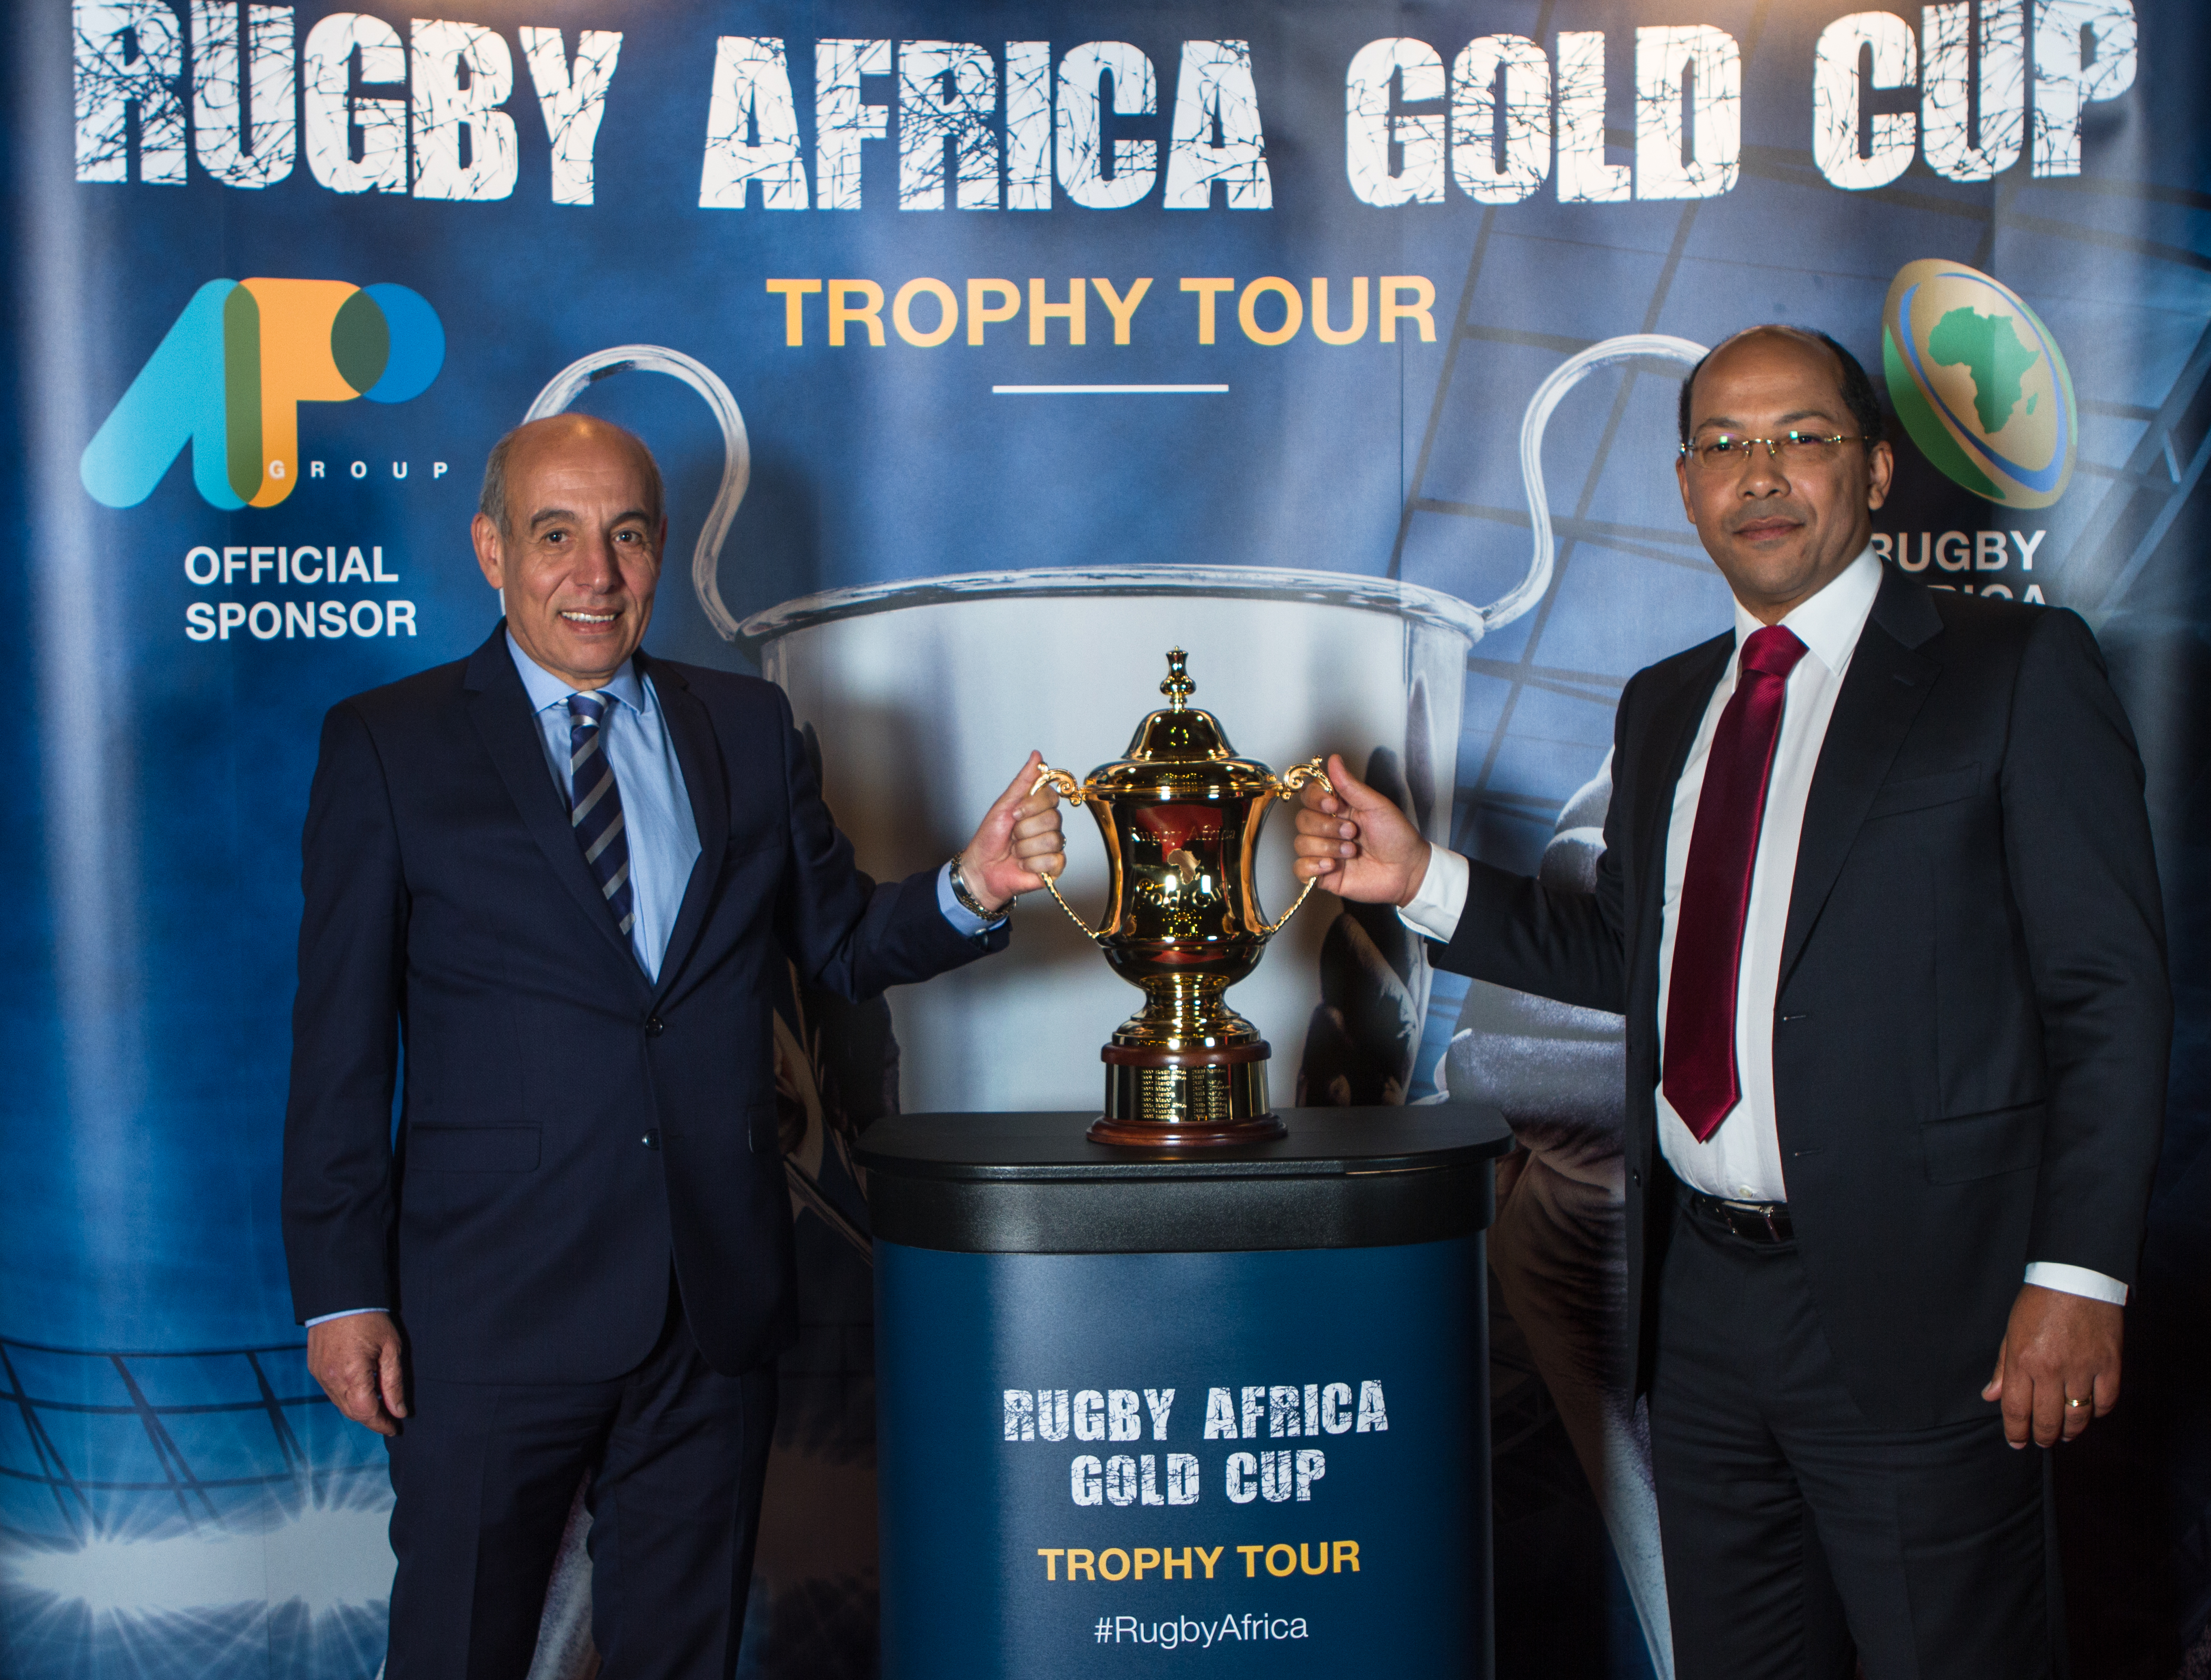 New Rugby Africa Gold Cup perpetual trophy unveiled